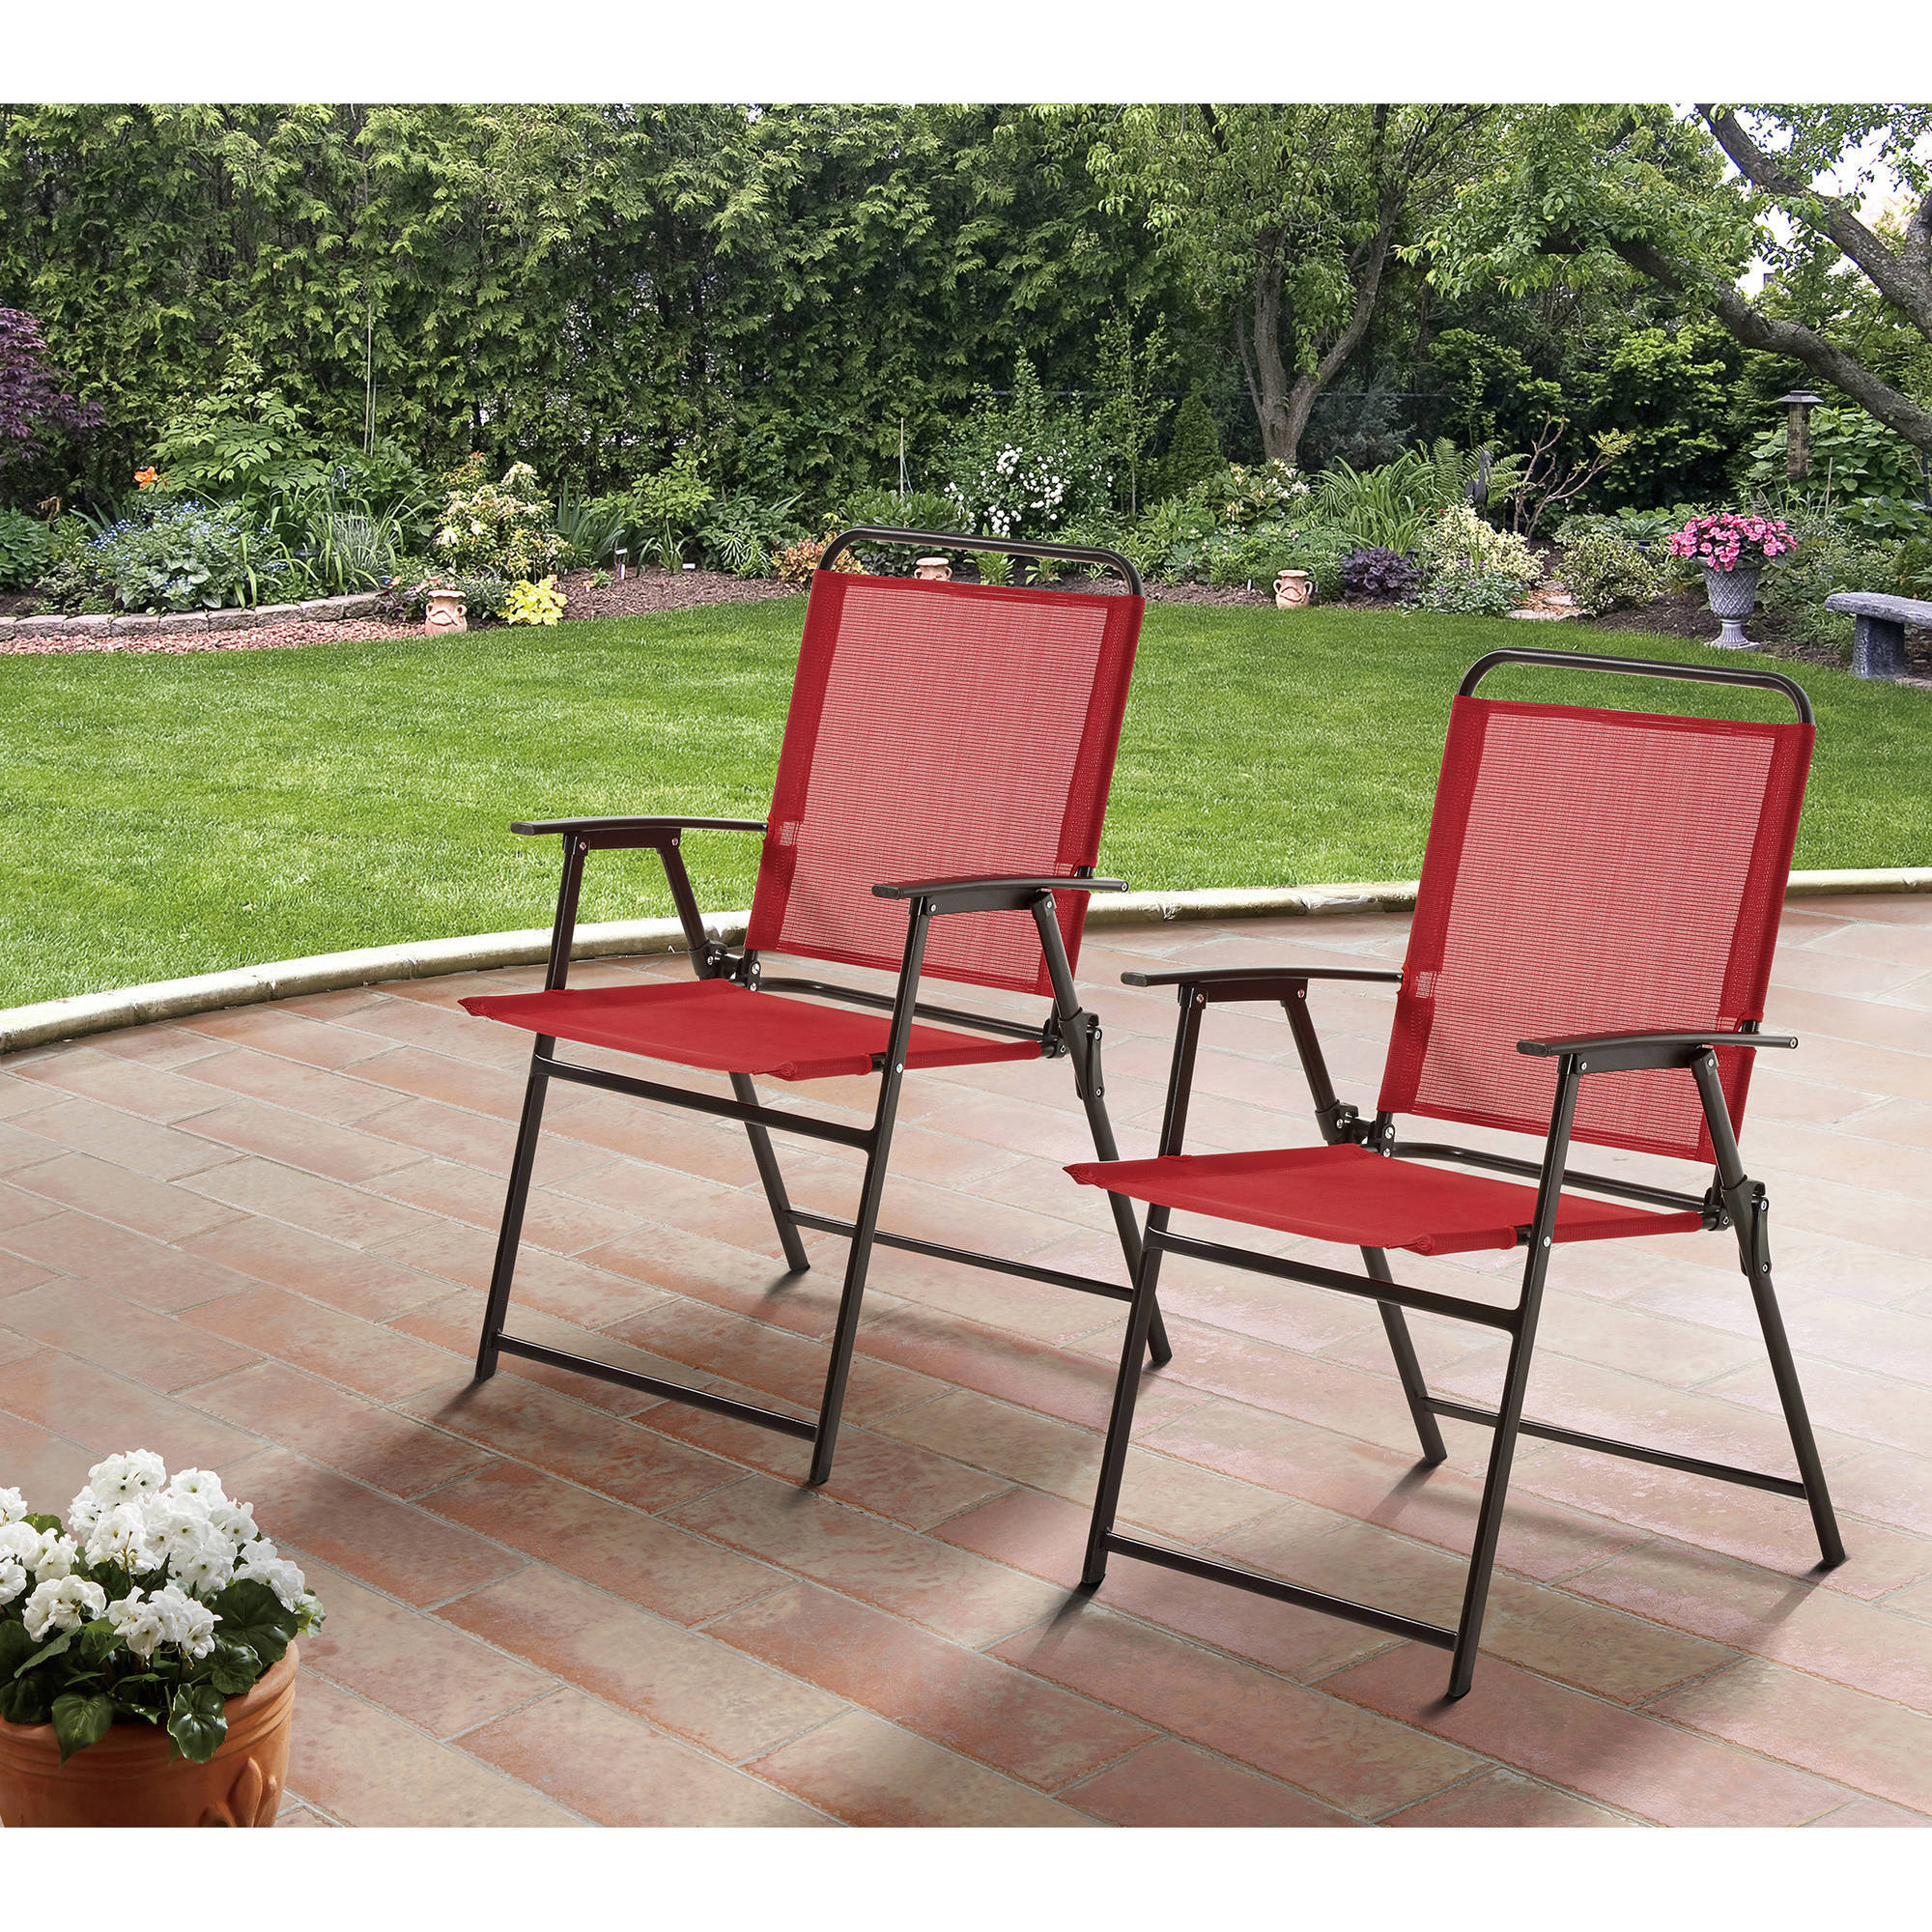 Woven Lawn Chair Mainstays Pleasant Grove Sling Folding Chair Set Of 2